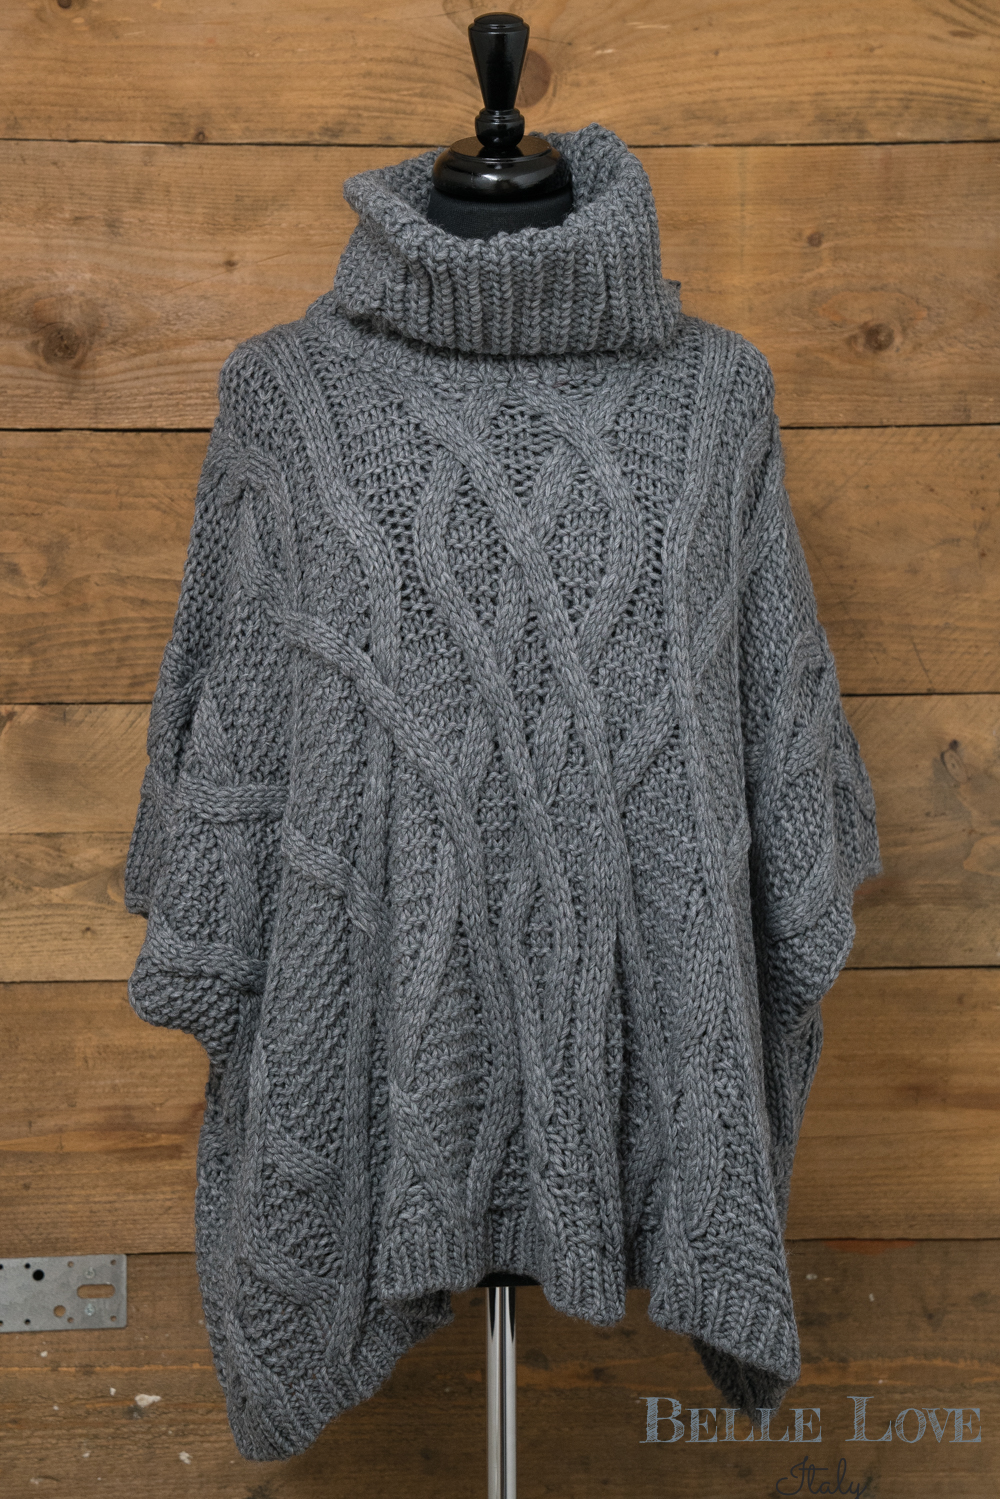 Belle Love Italy Cable Knitwear Jumper